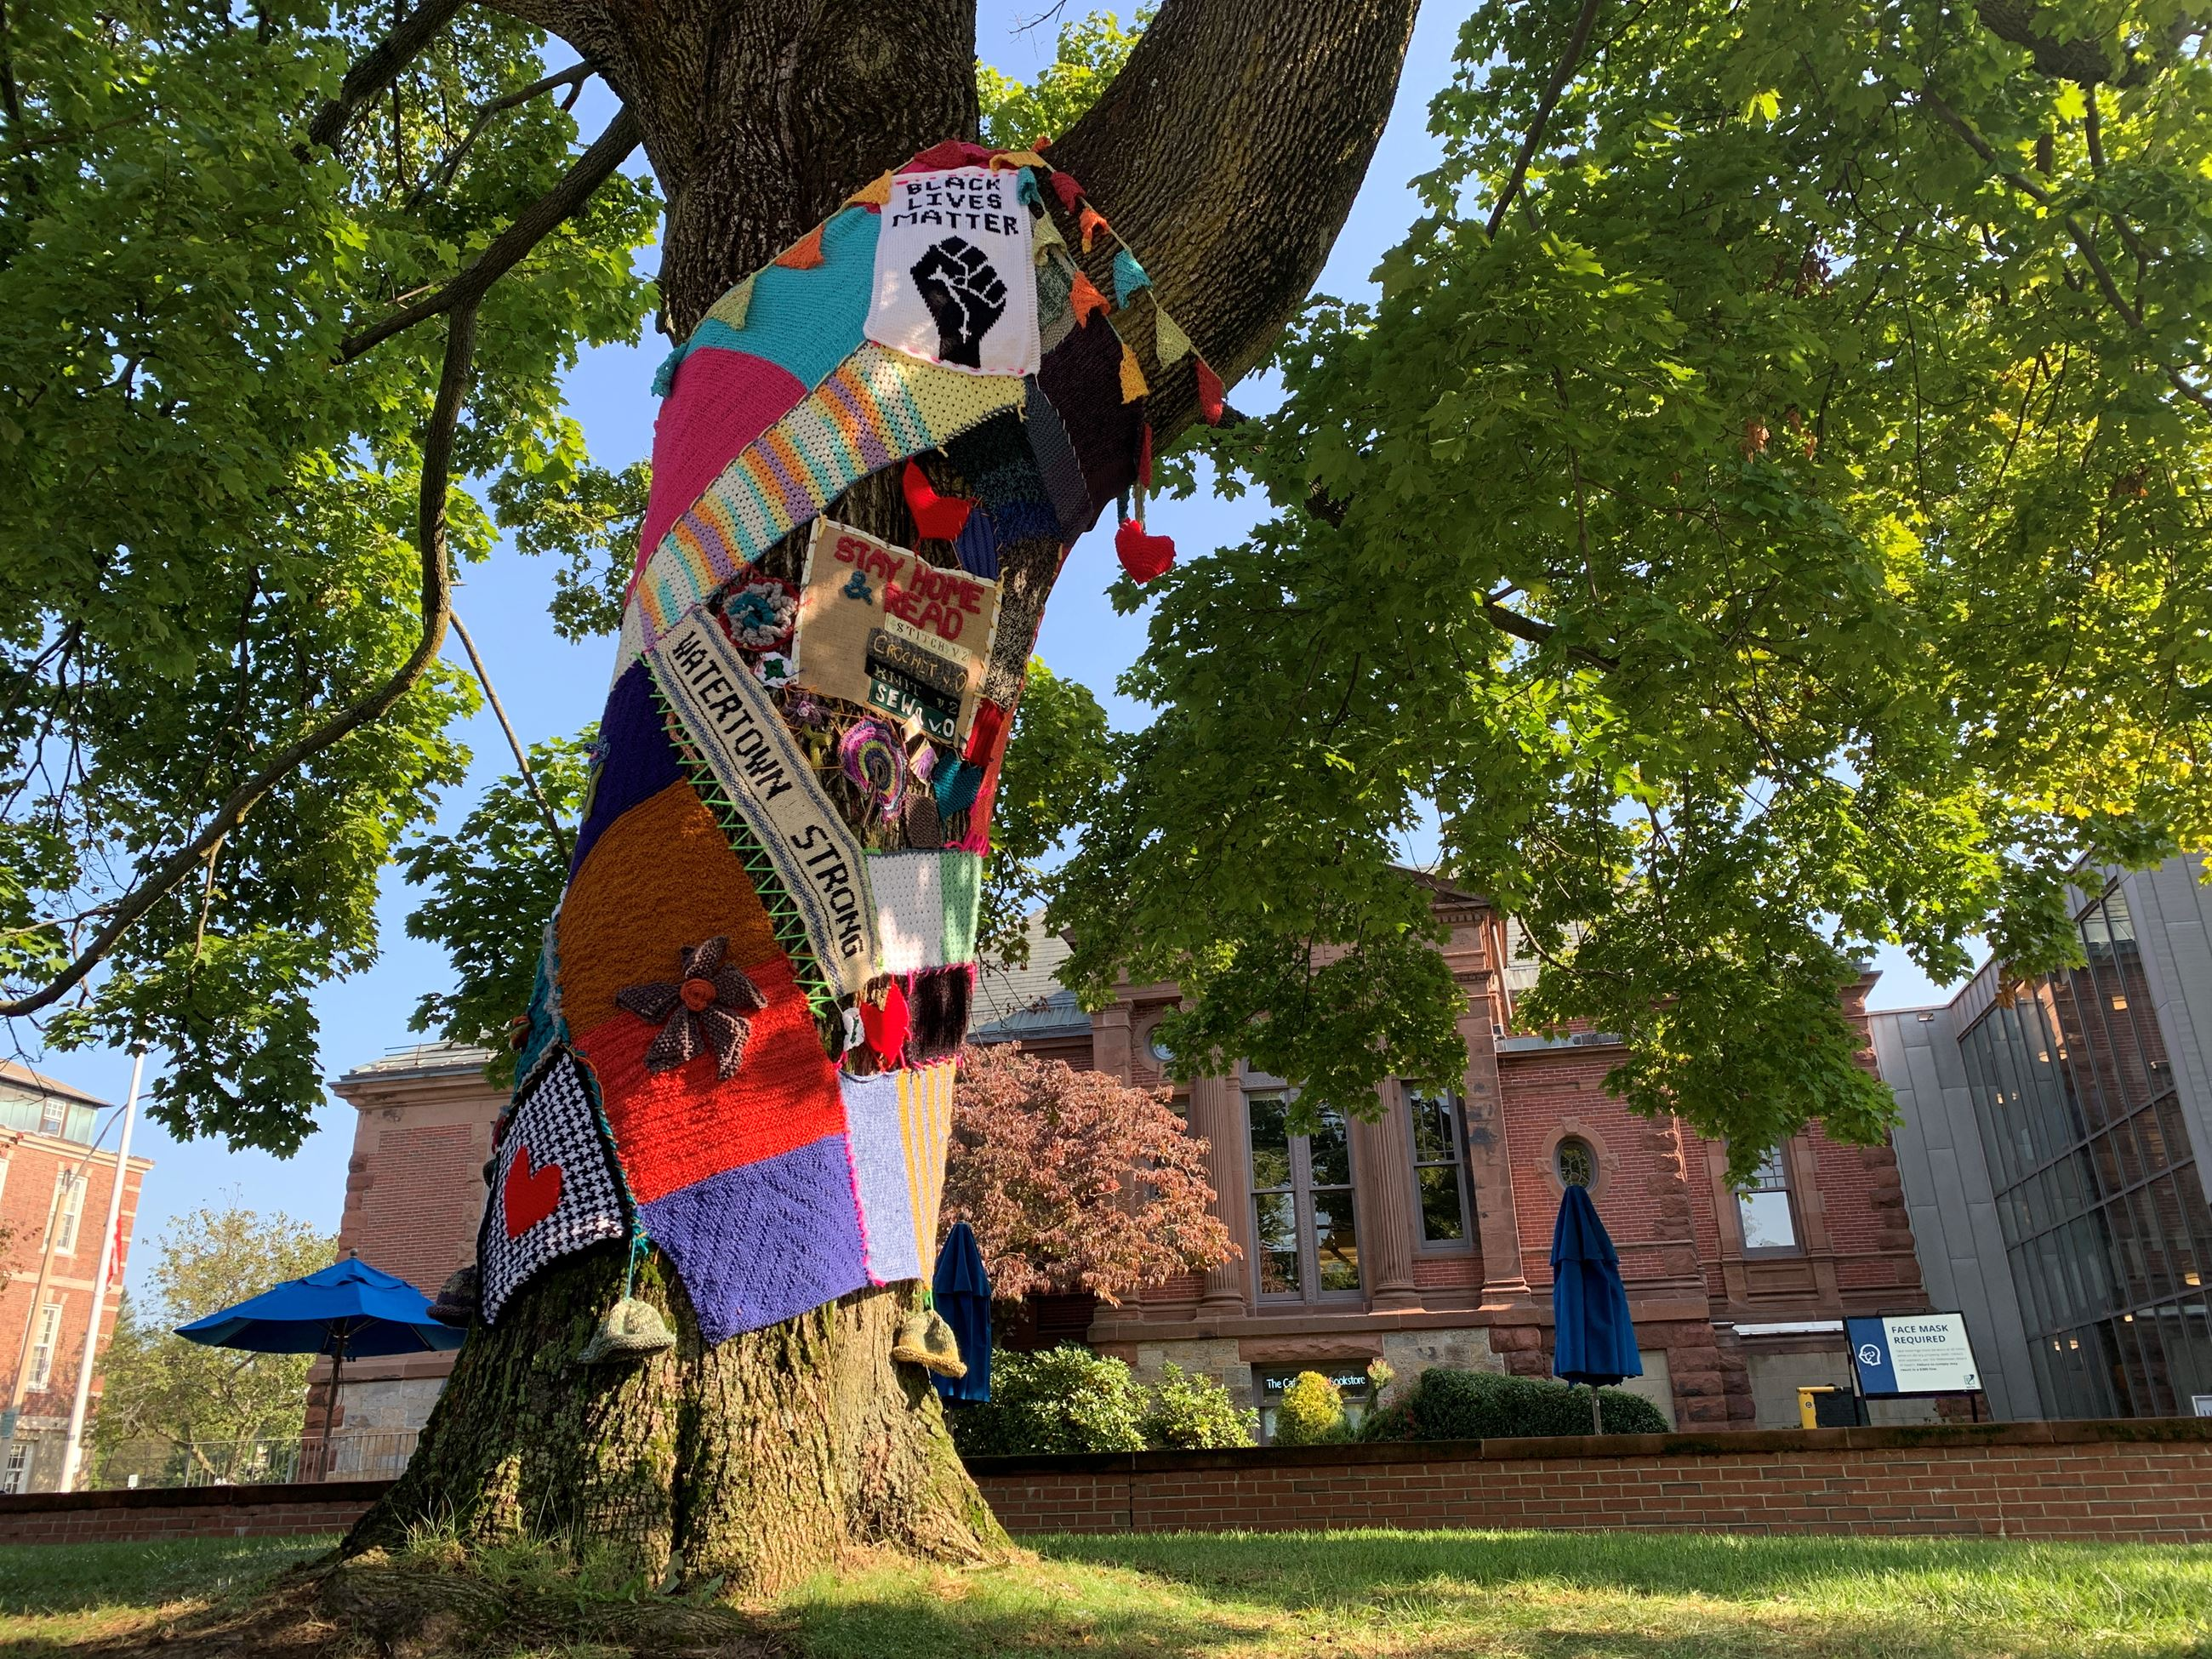 Photo of a large deciduous tree with colorful knit yarn covering the trunk.